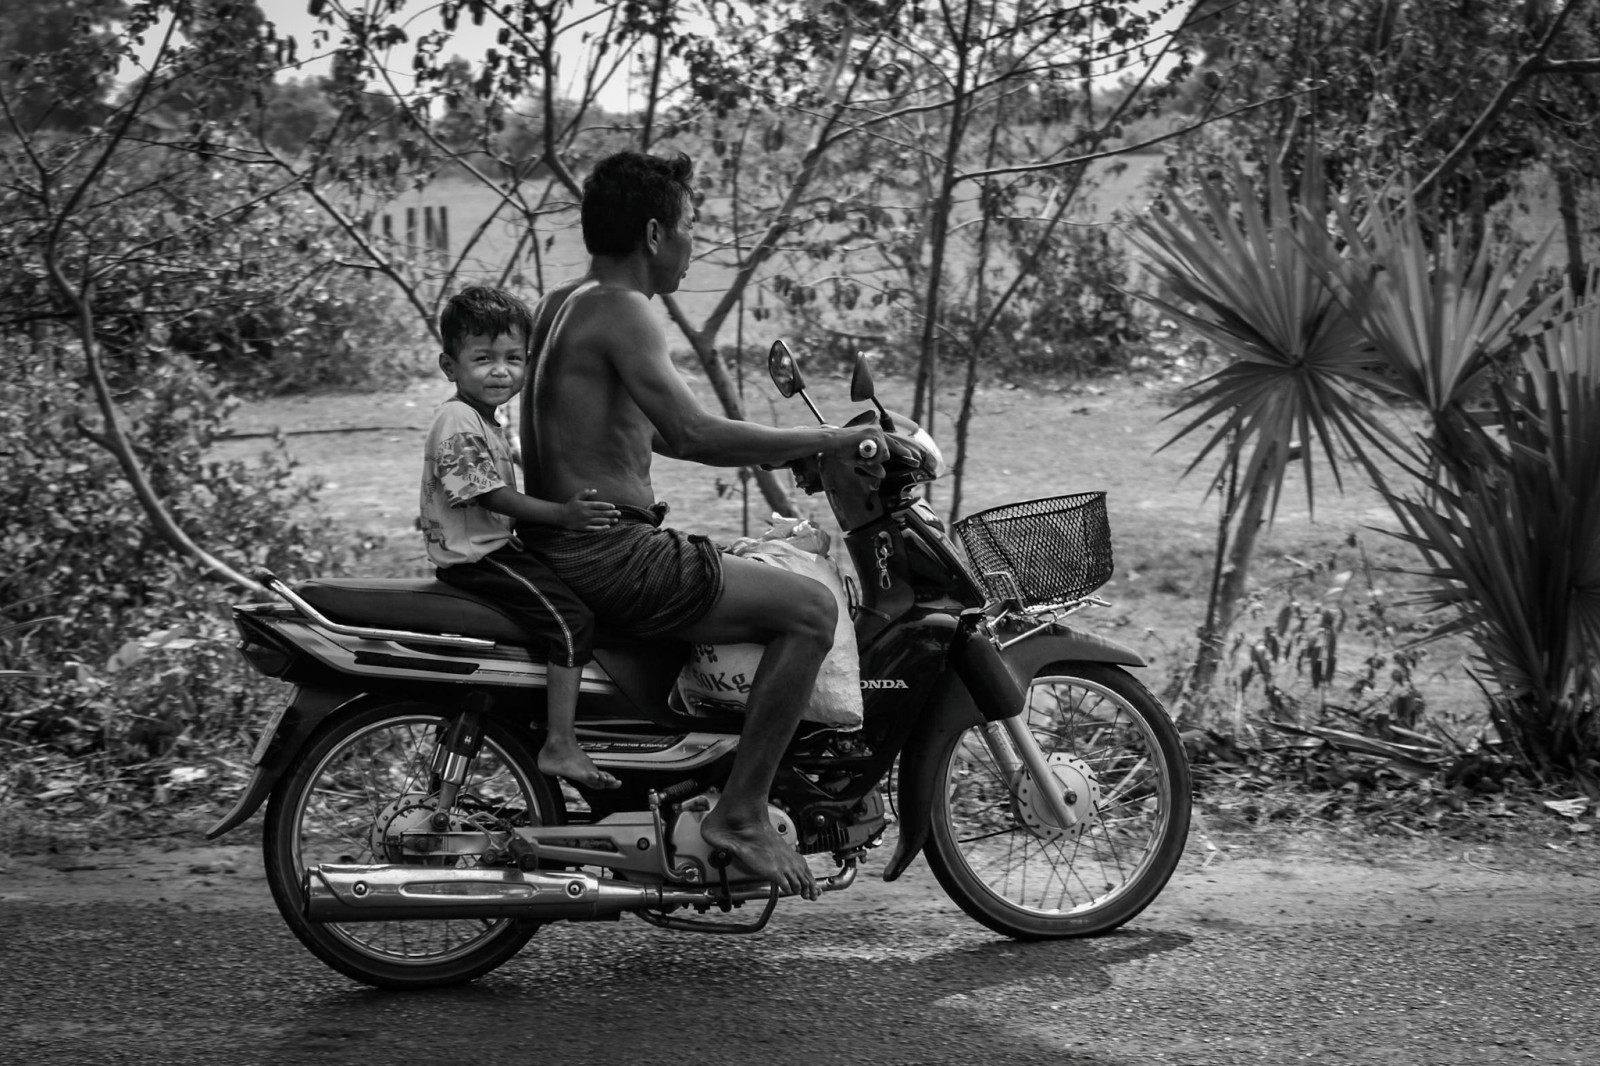 Cambodia photo tours Angkor Wat father and son on a motorbike